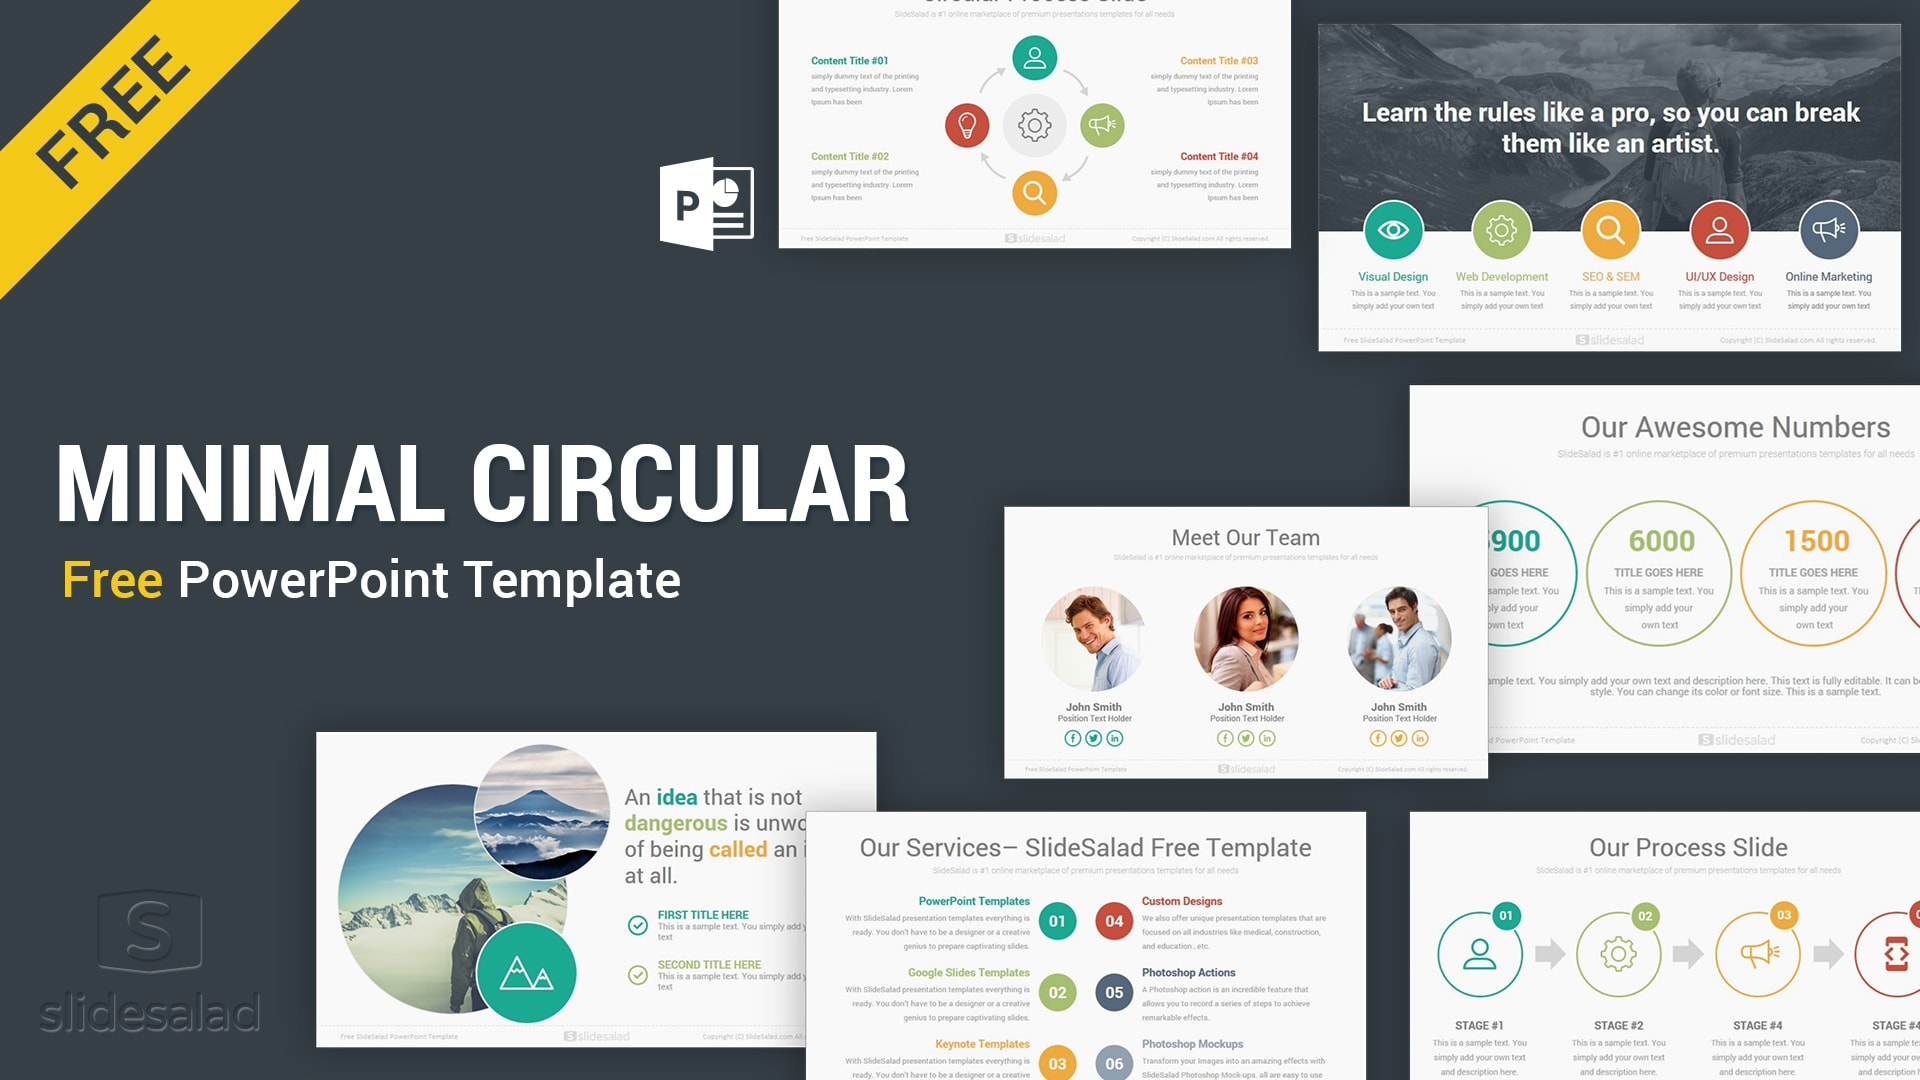 Circular Free Download Minimal PowerPoint Template PPT Slides – Best Free Infographic PPT Template for Multiniche Presentations